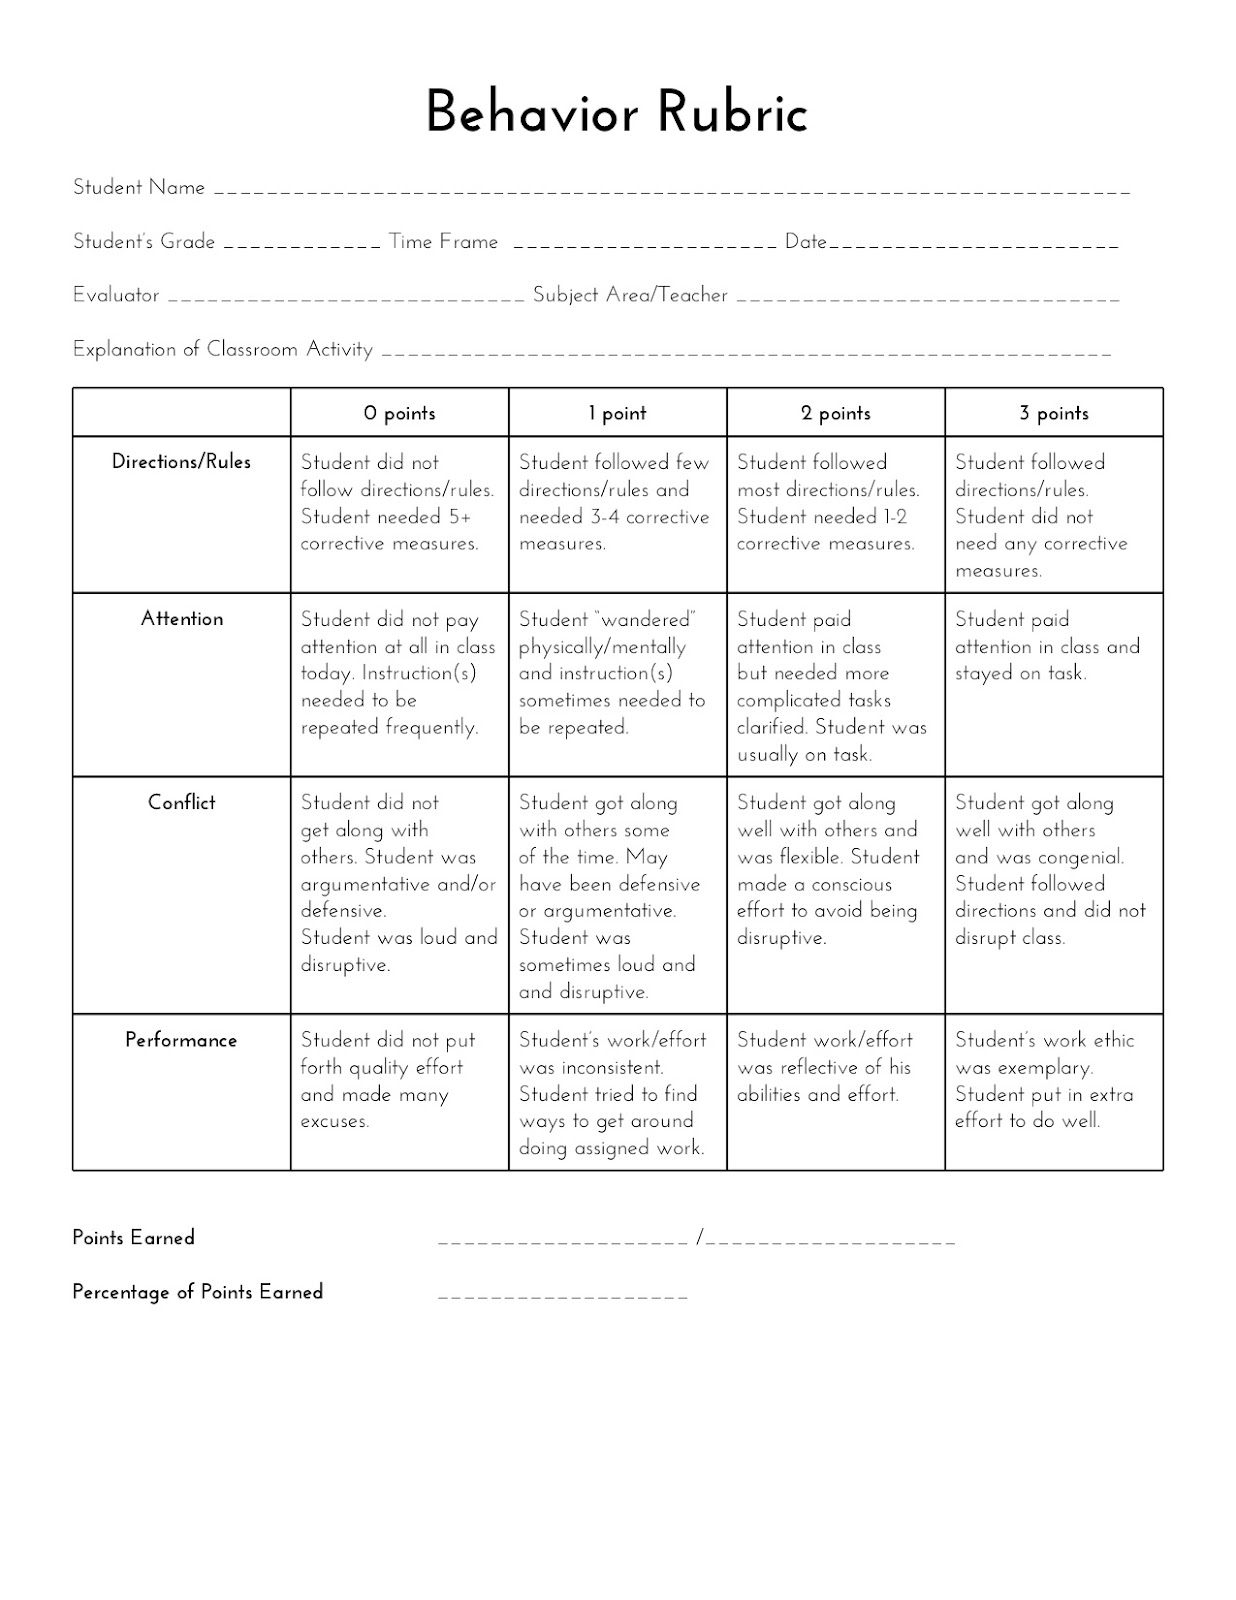 Sped Head Behavior Rubric